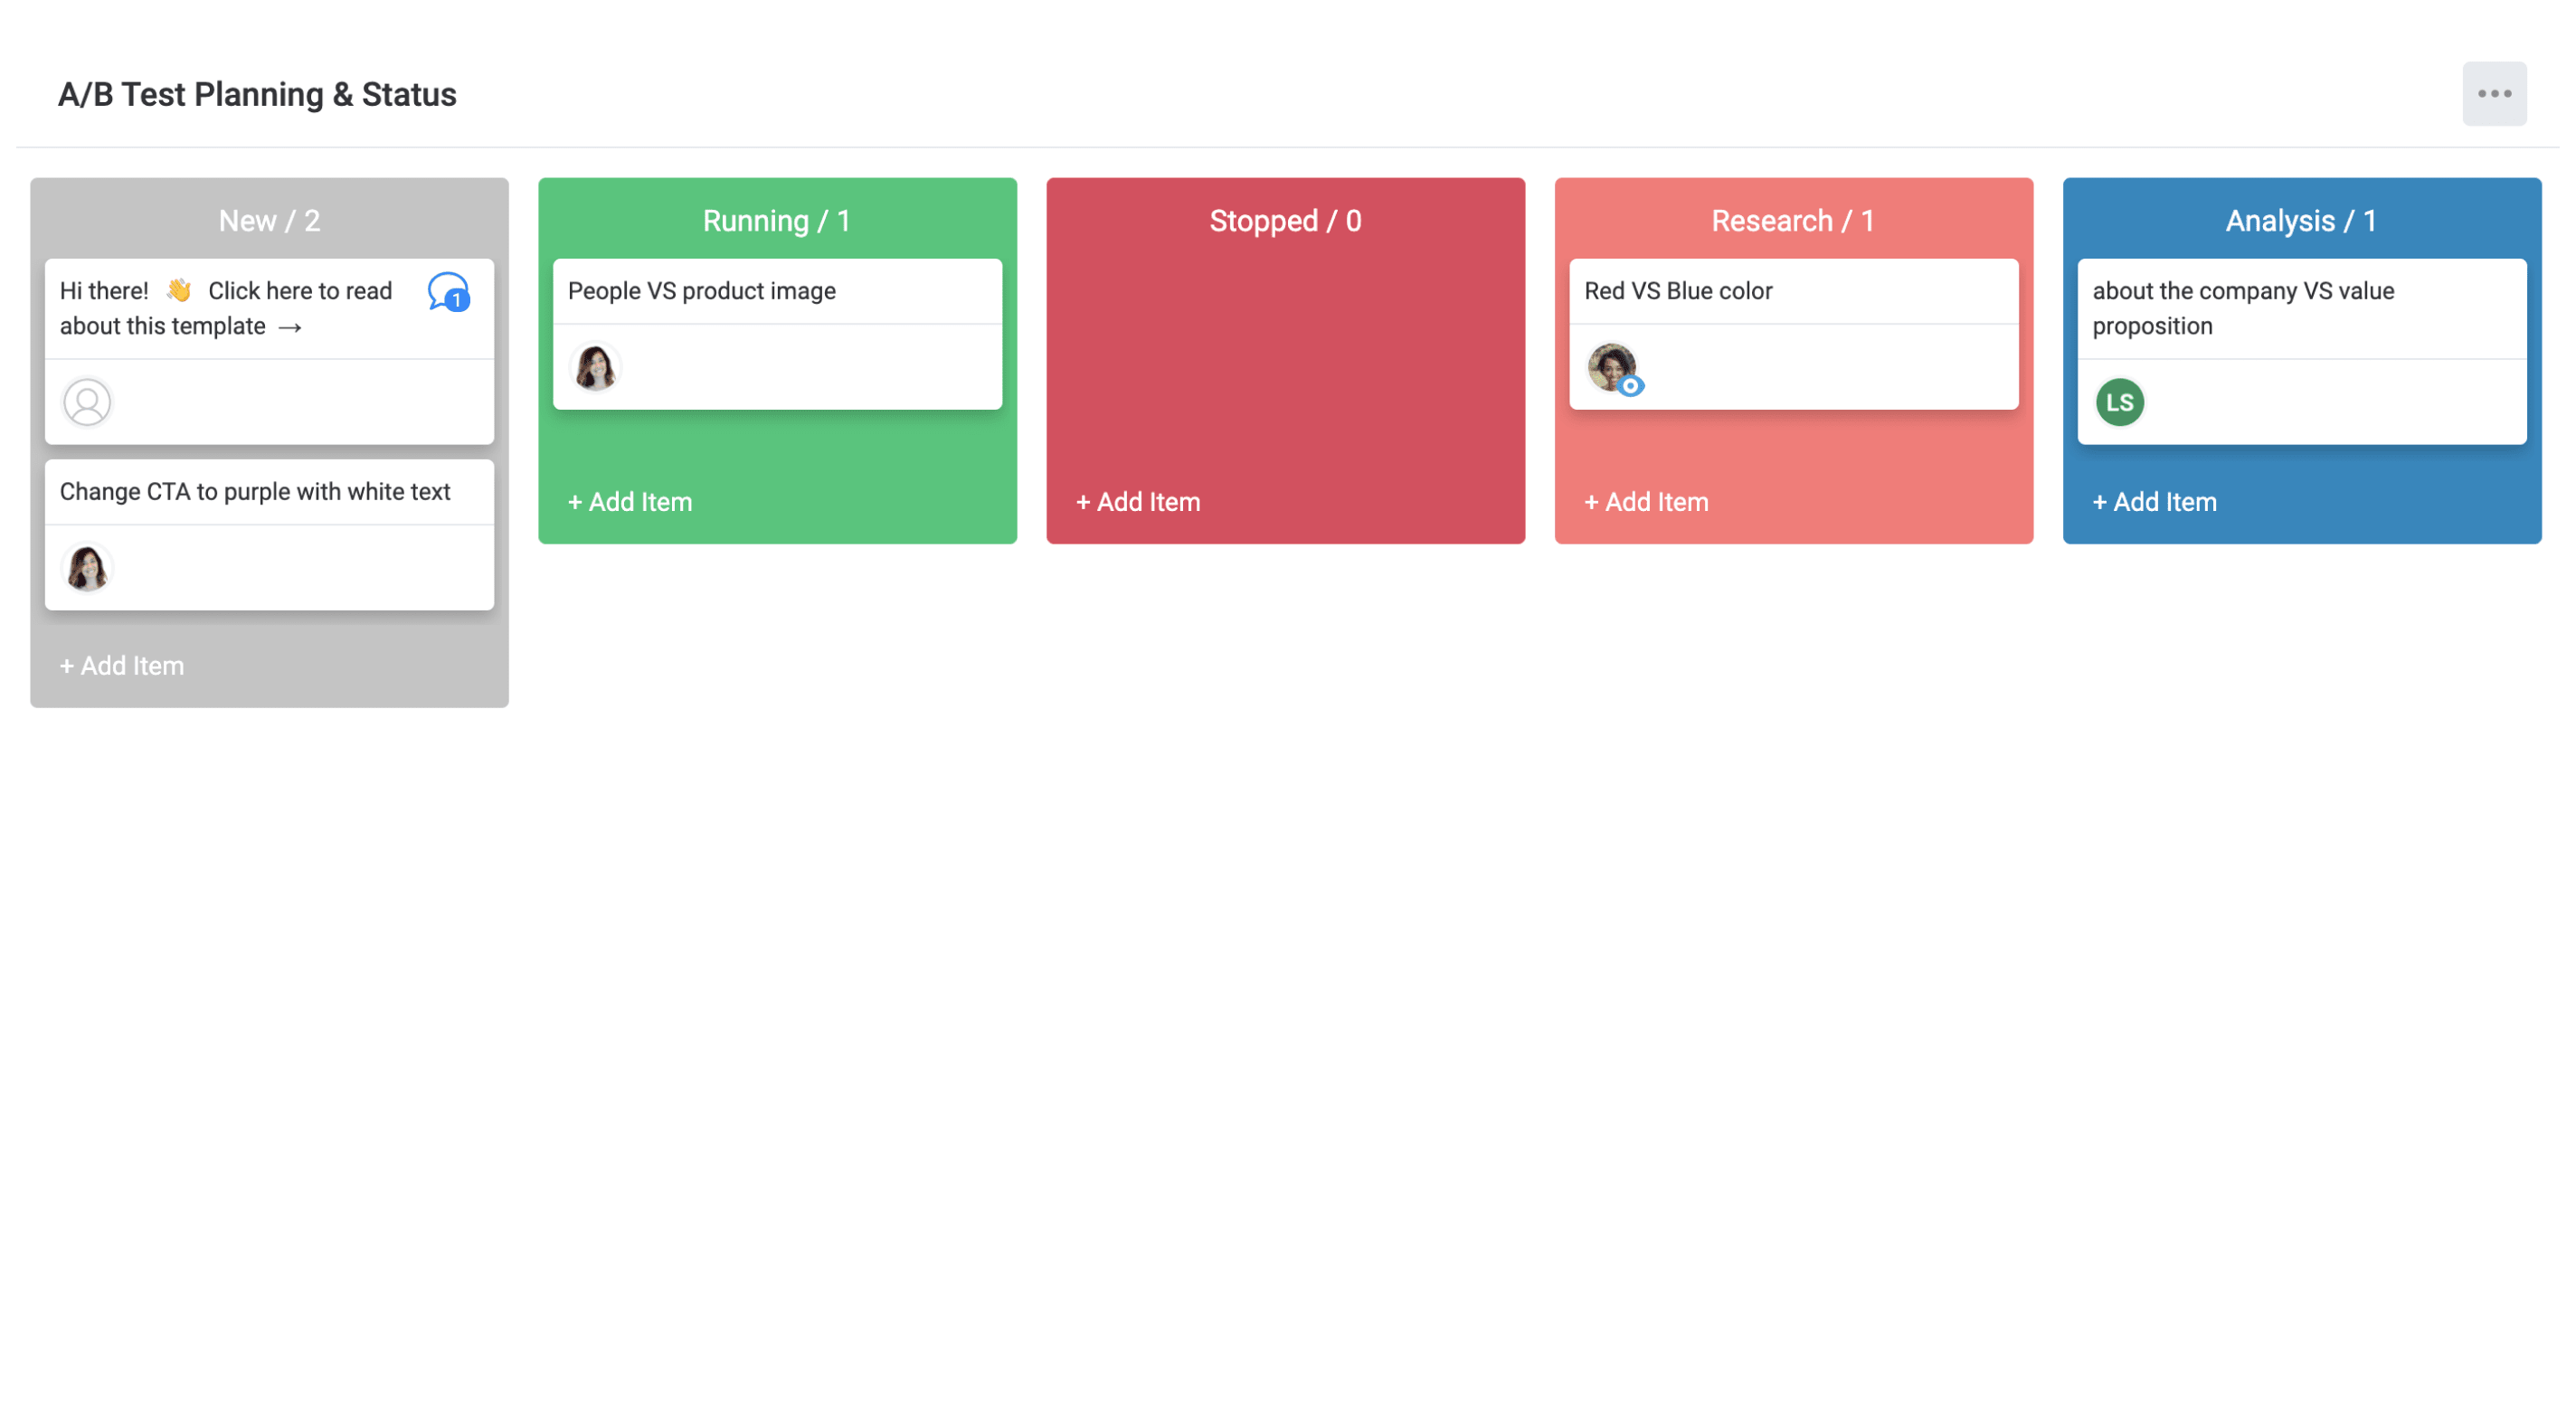 Kanban to visually plan new tests with your team